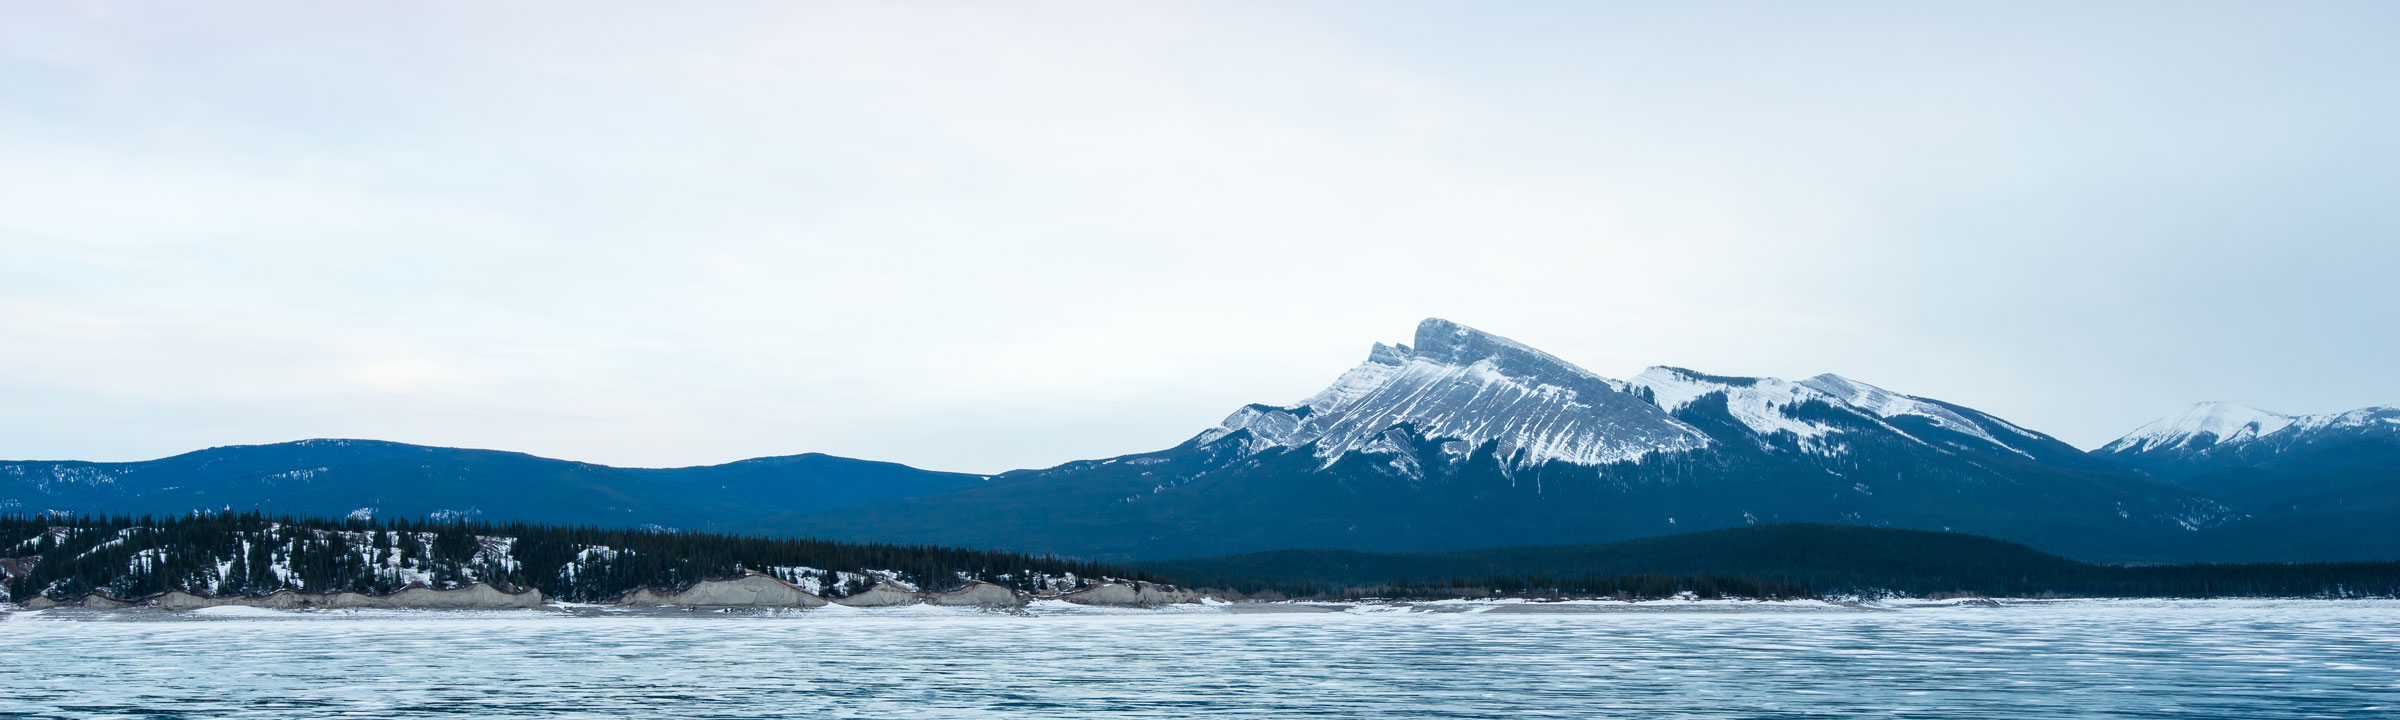 A 72-Hr Alberta weekend Roadtrip in Photographs